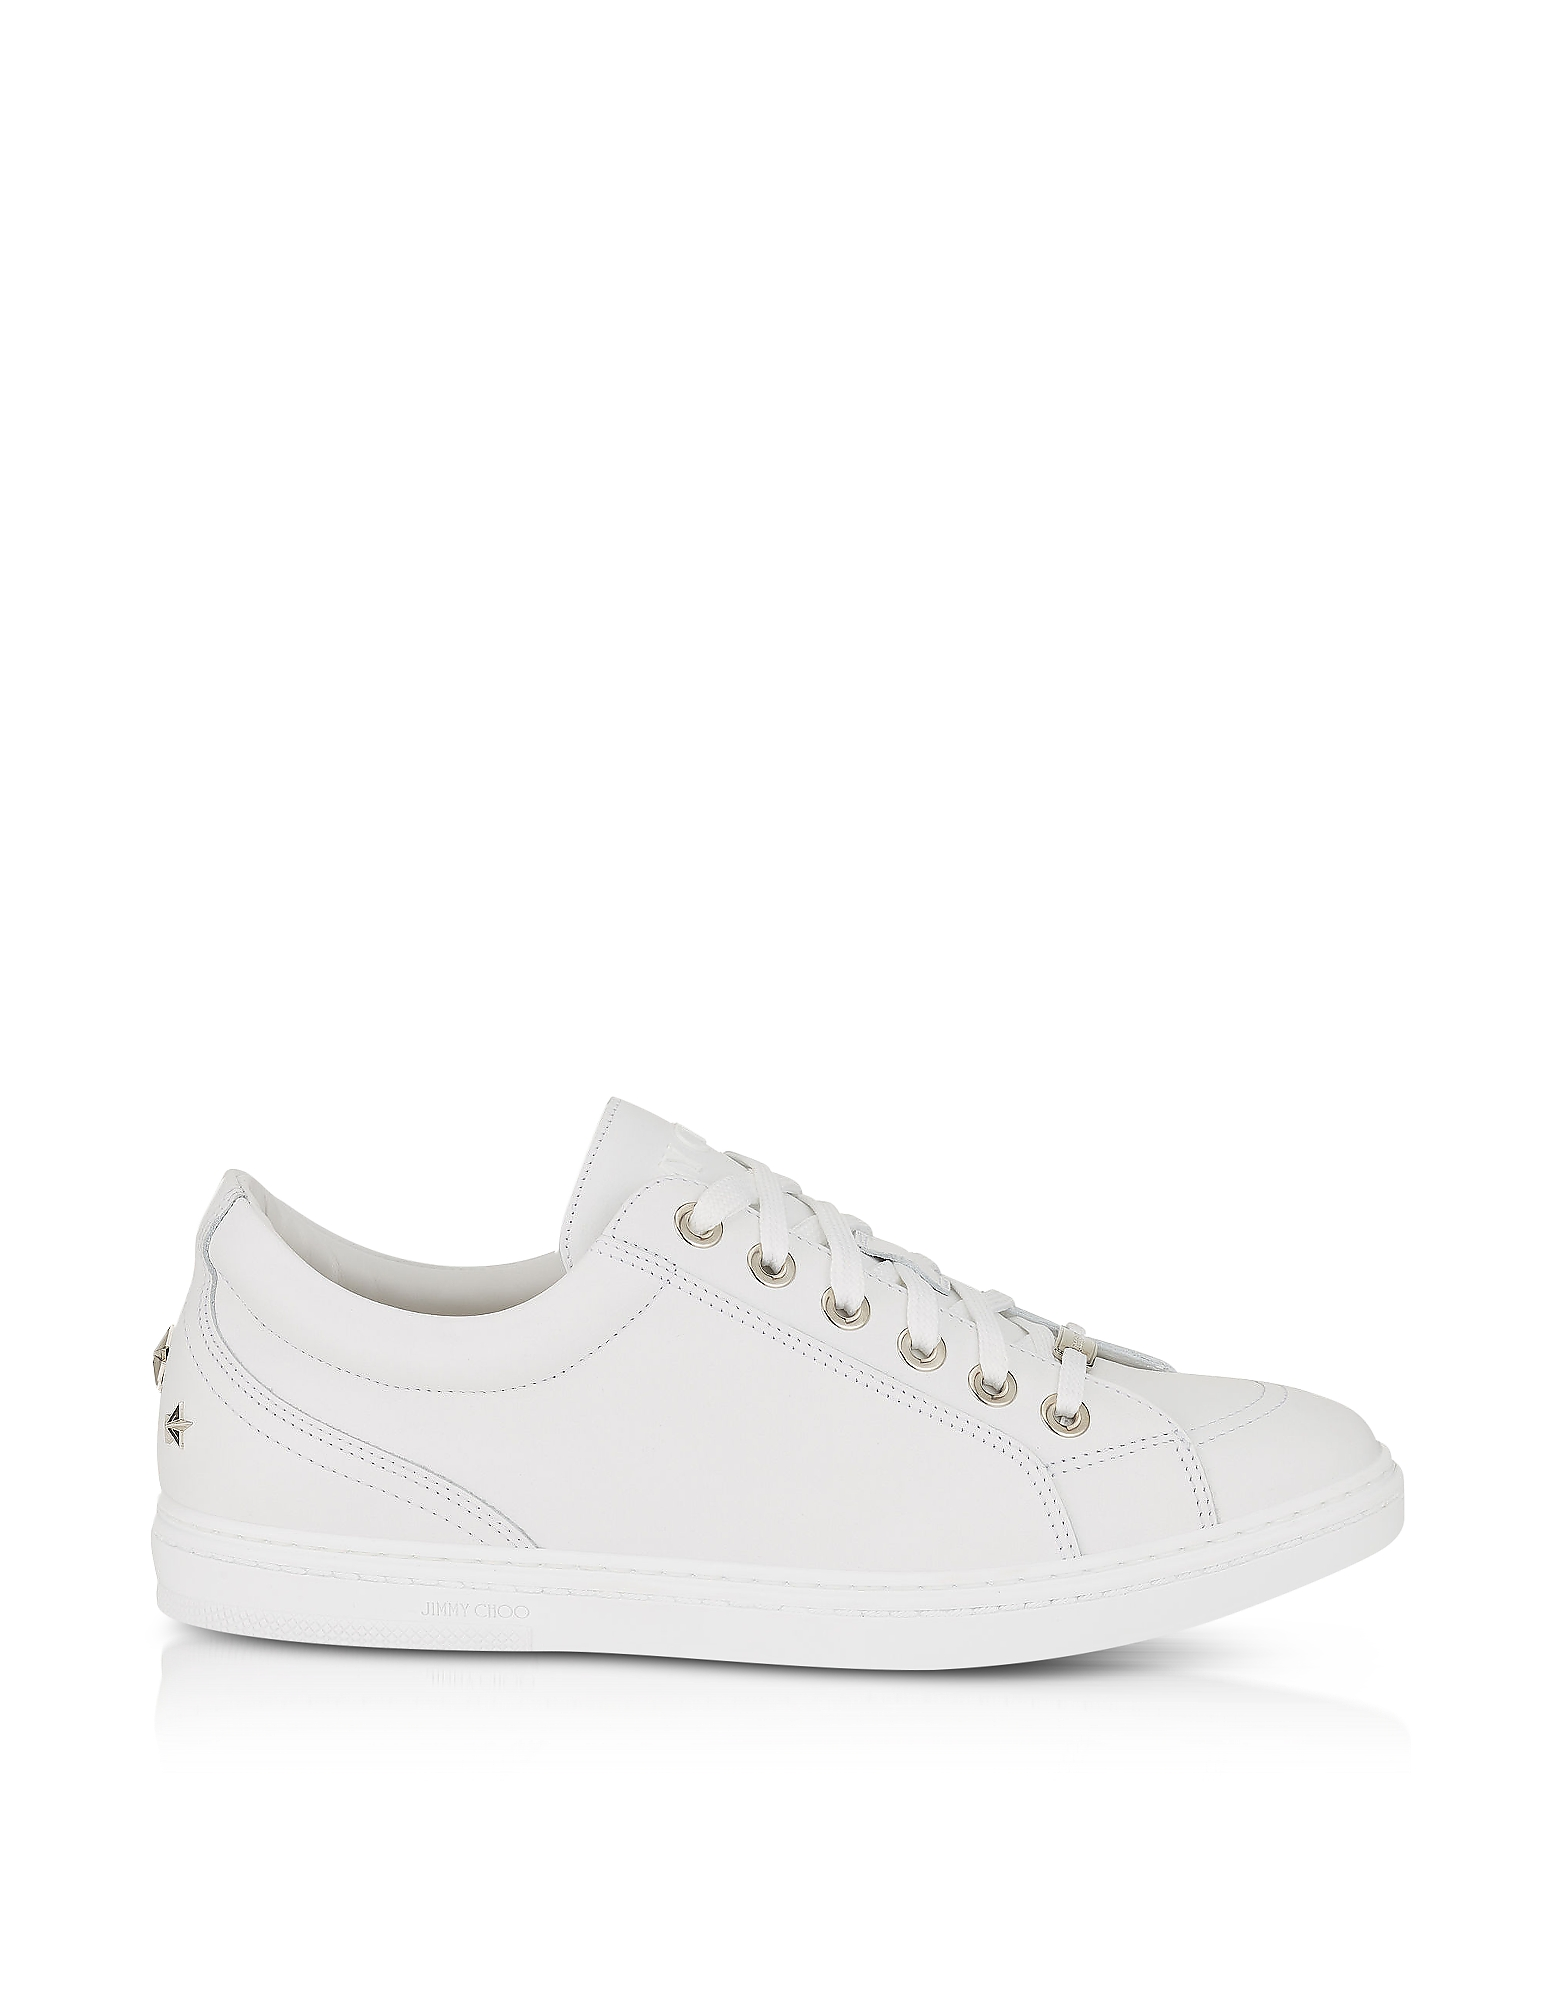 Jimmy Choo Shoes, Cash SML Ultra White Leather Low Top Sneakers w/Studded Stars